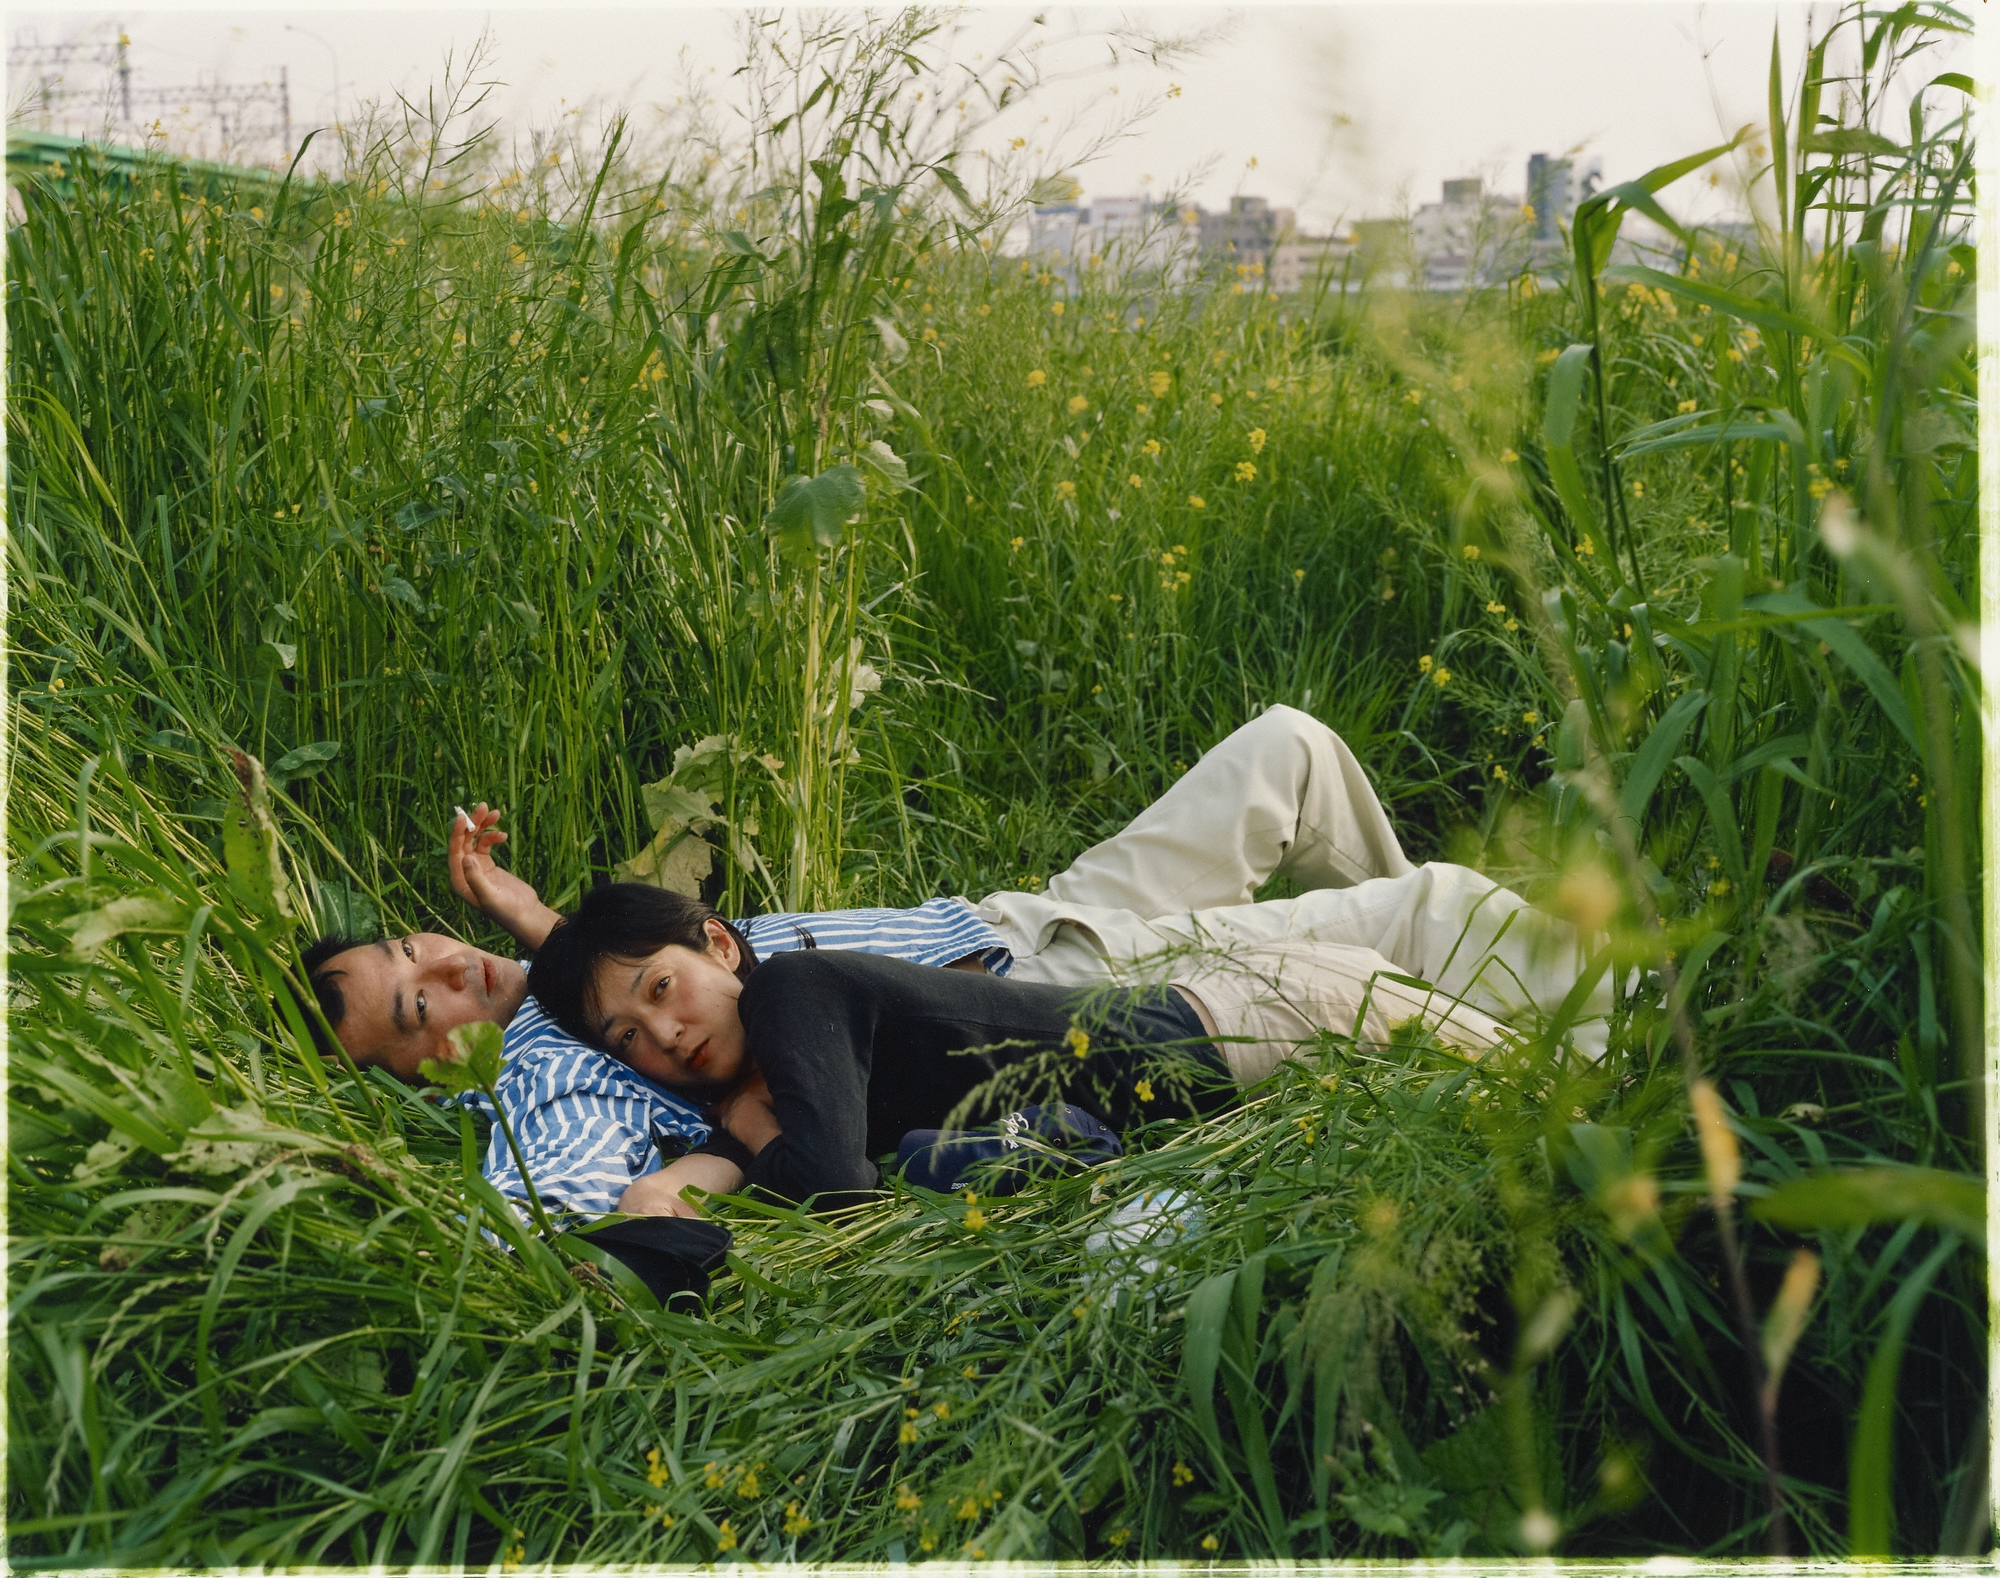 Picnic #32, 2005, Masato Seto. 16 15/16 x 21 7/16 inches. J. Paul Getty Museum. Purchased with funds provided by the Photographs Council. © Masato Seto